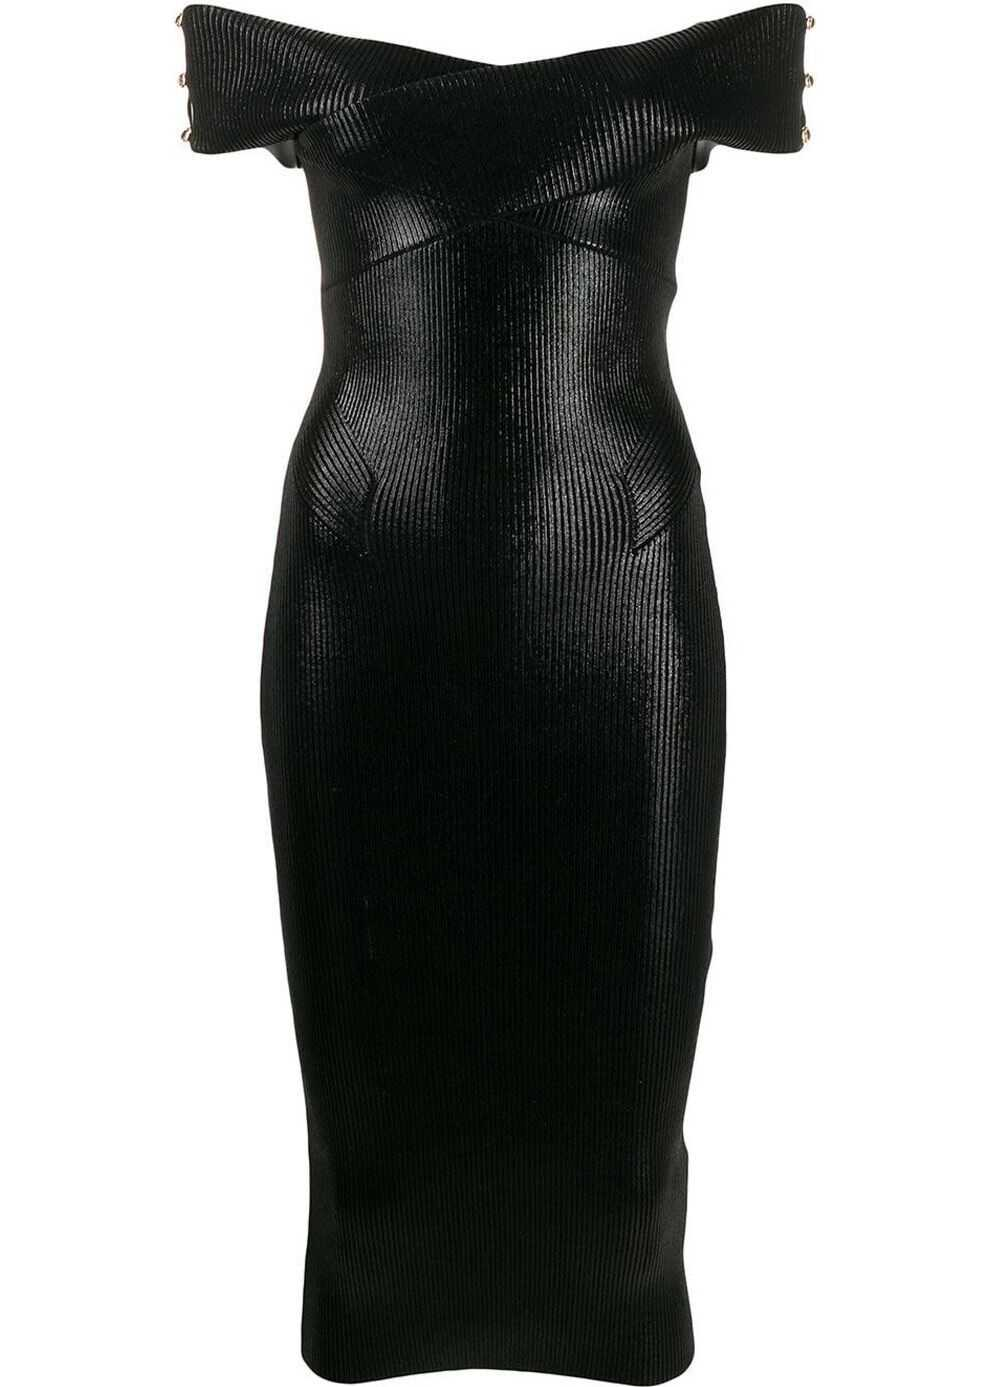 Versace Jeans Viscose Dress BLACK